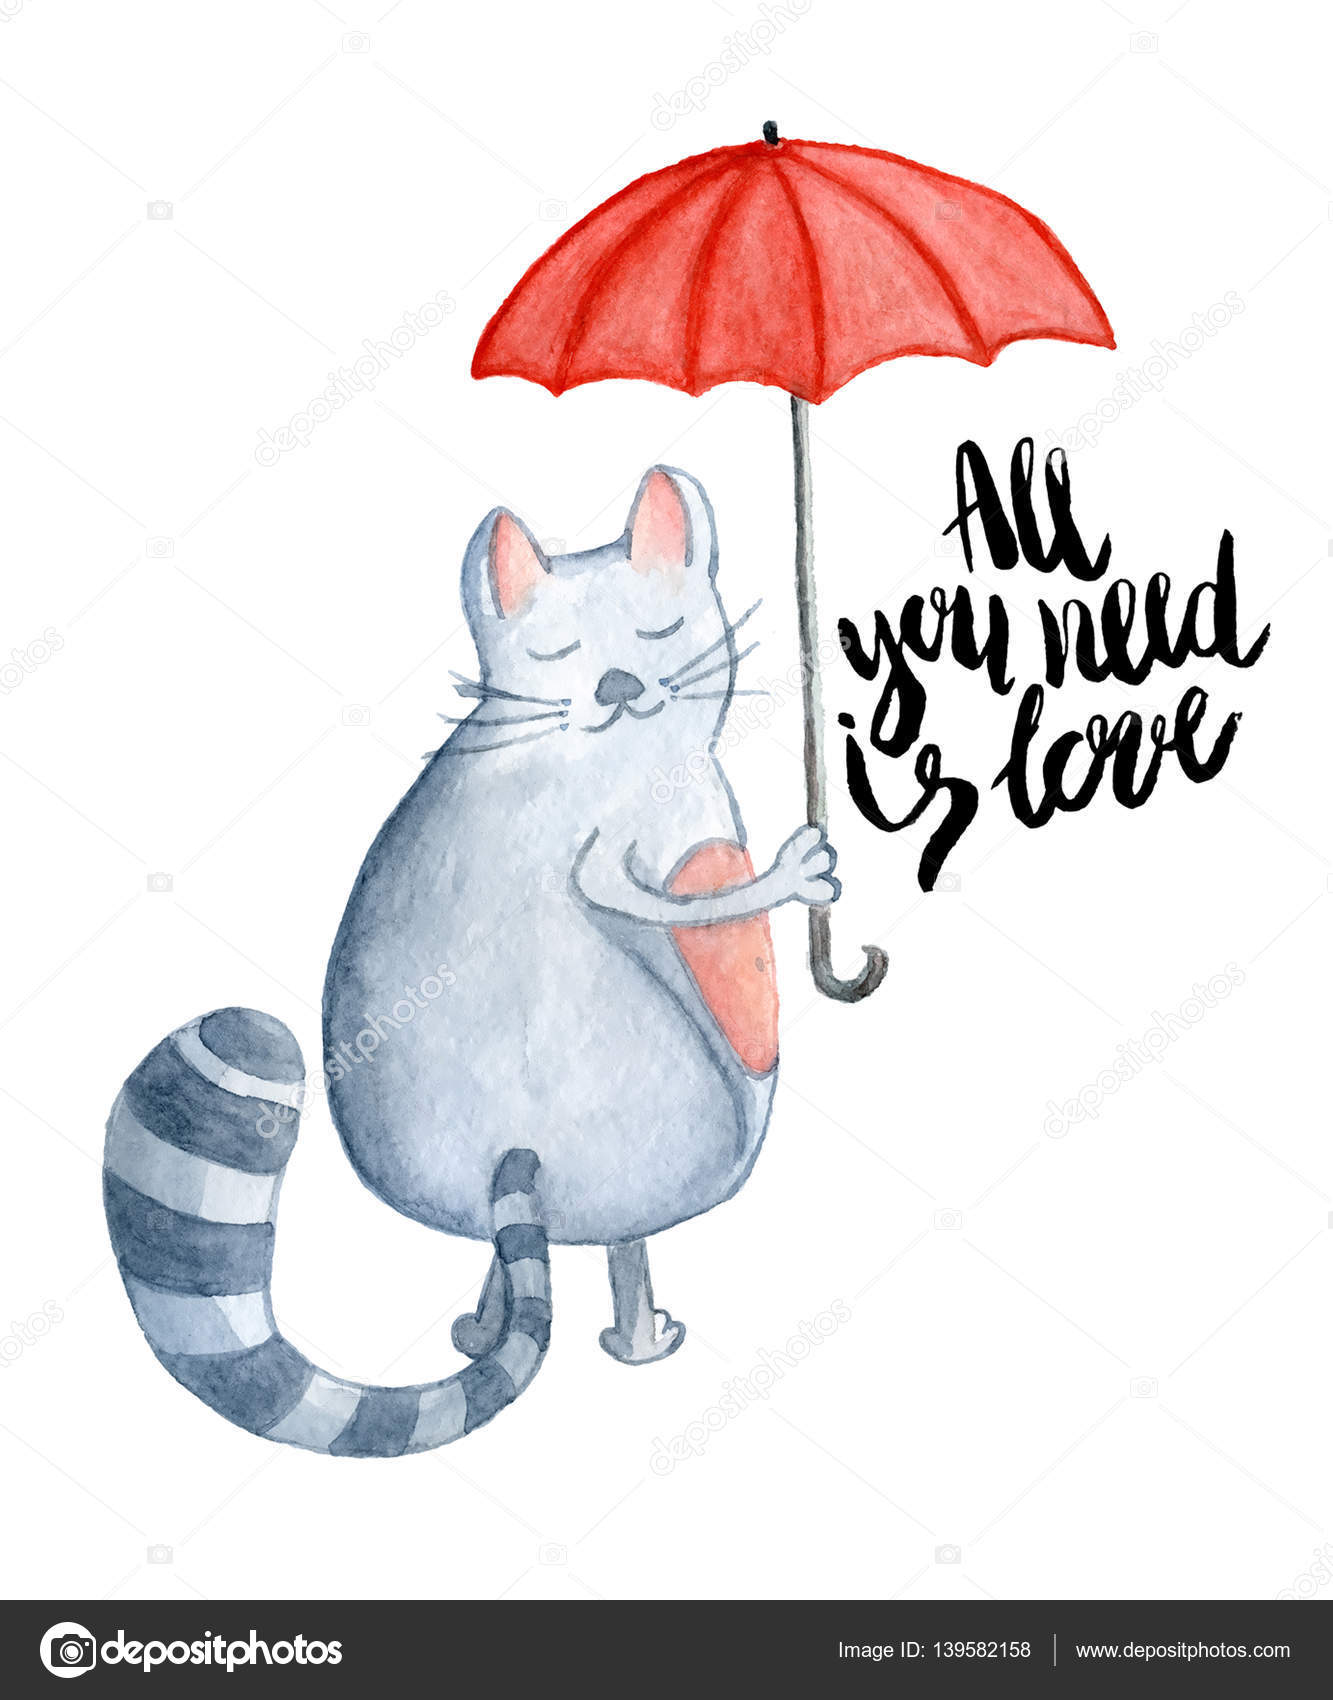 Drawn rodent umbrellas Invitations illustration cards Watercolor red